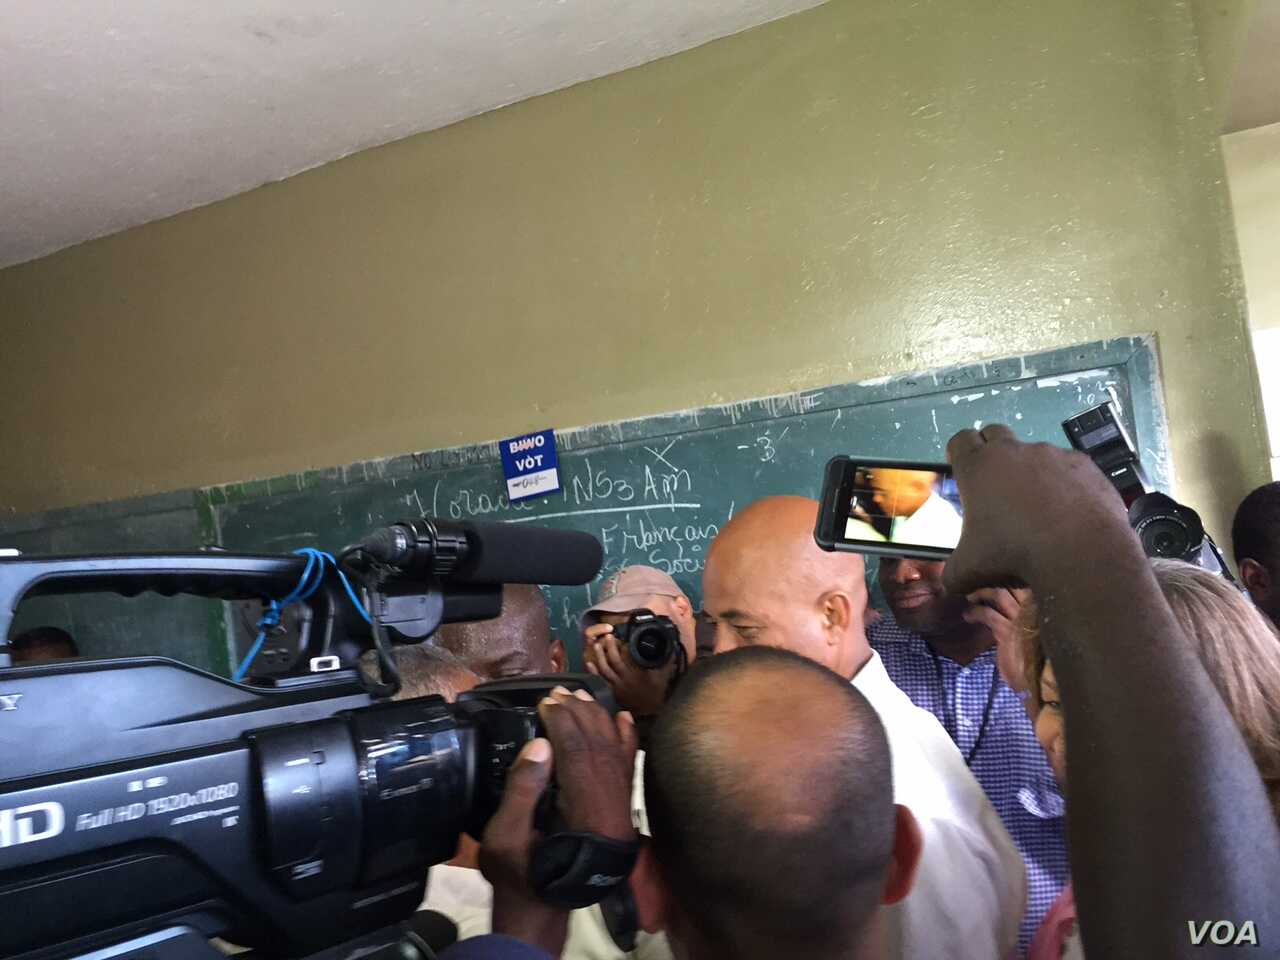 Haiti's President Michel Martelly on his way to vote at a polling station in Petion-Ville, Haiti, Oct. 25, 2015. (J. Belizaire/VOA)